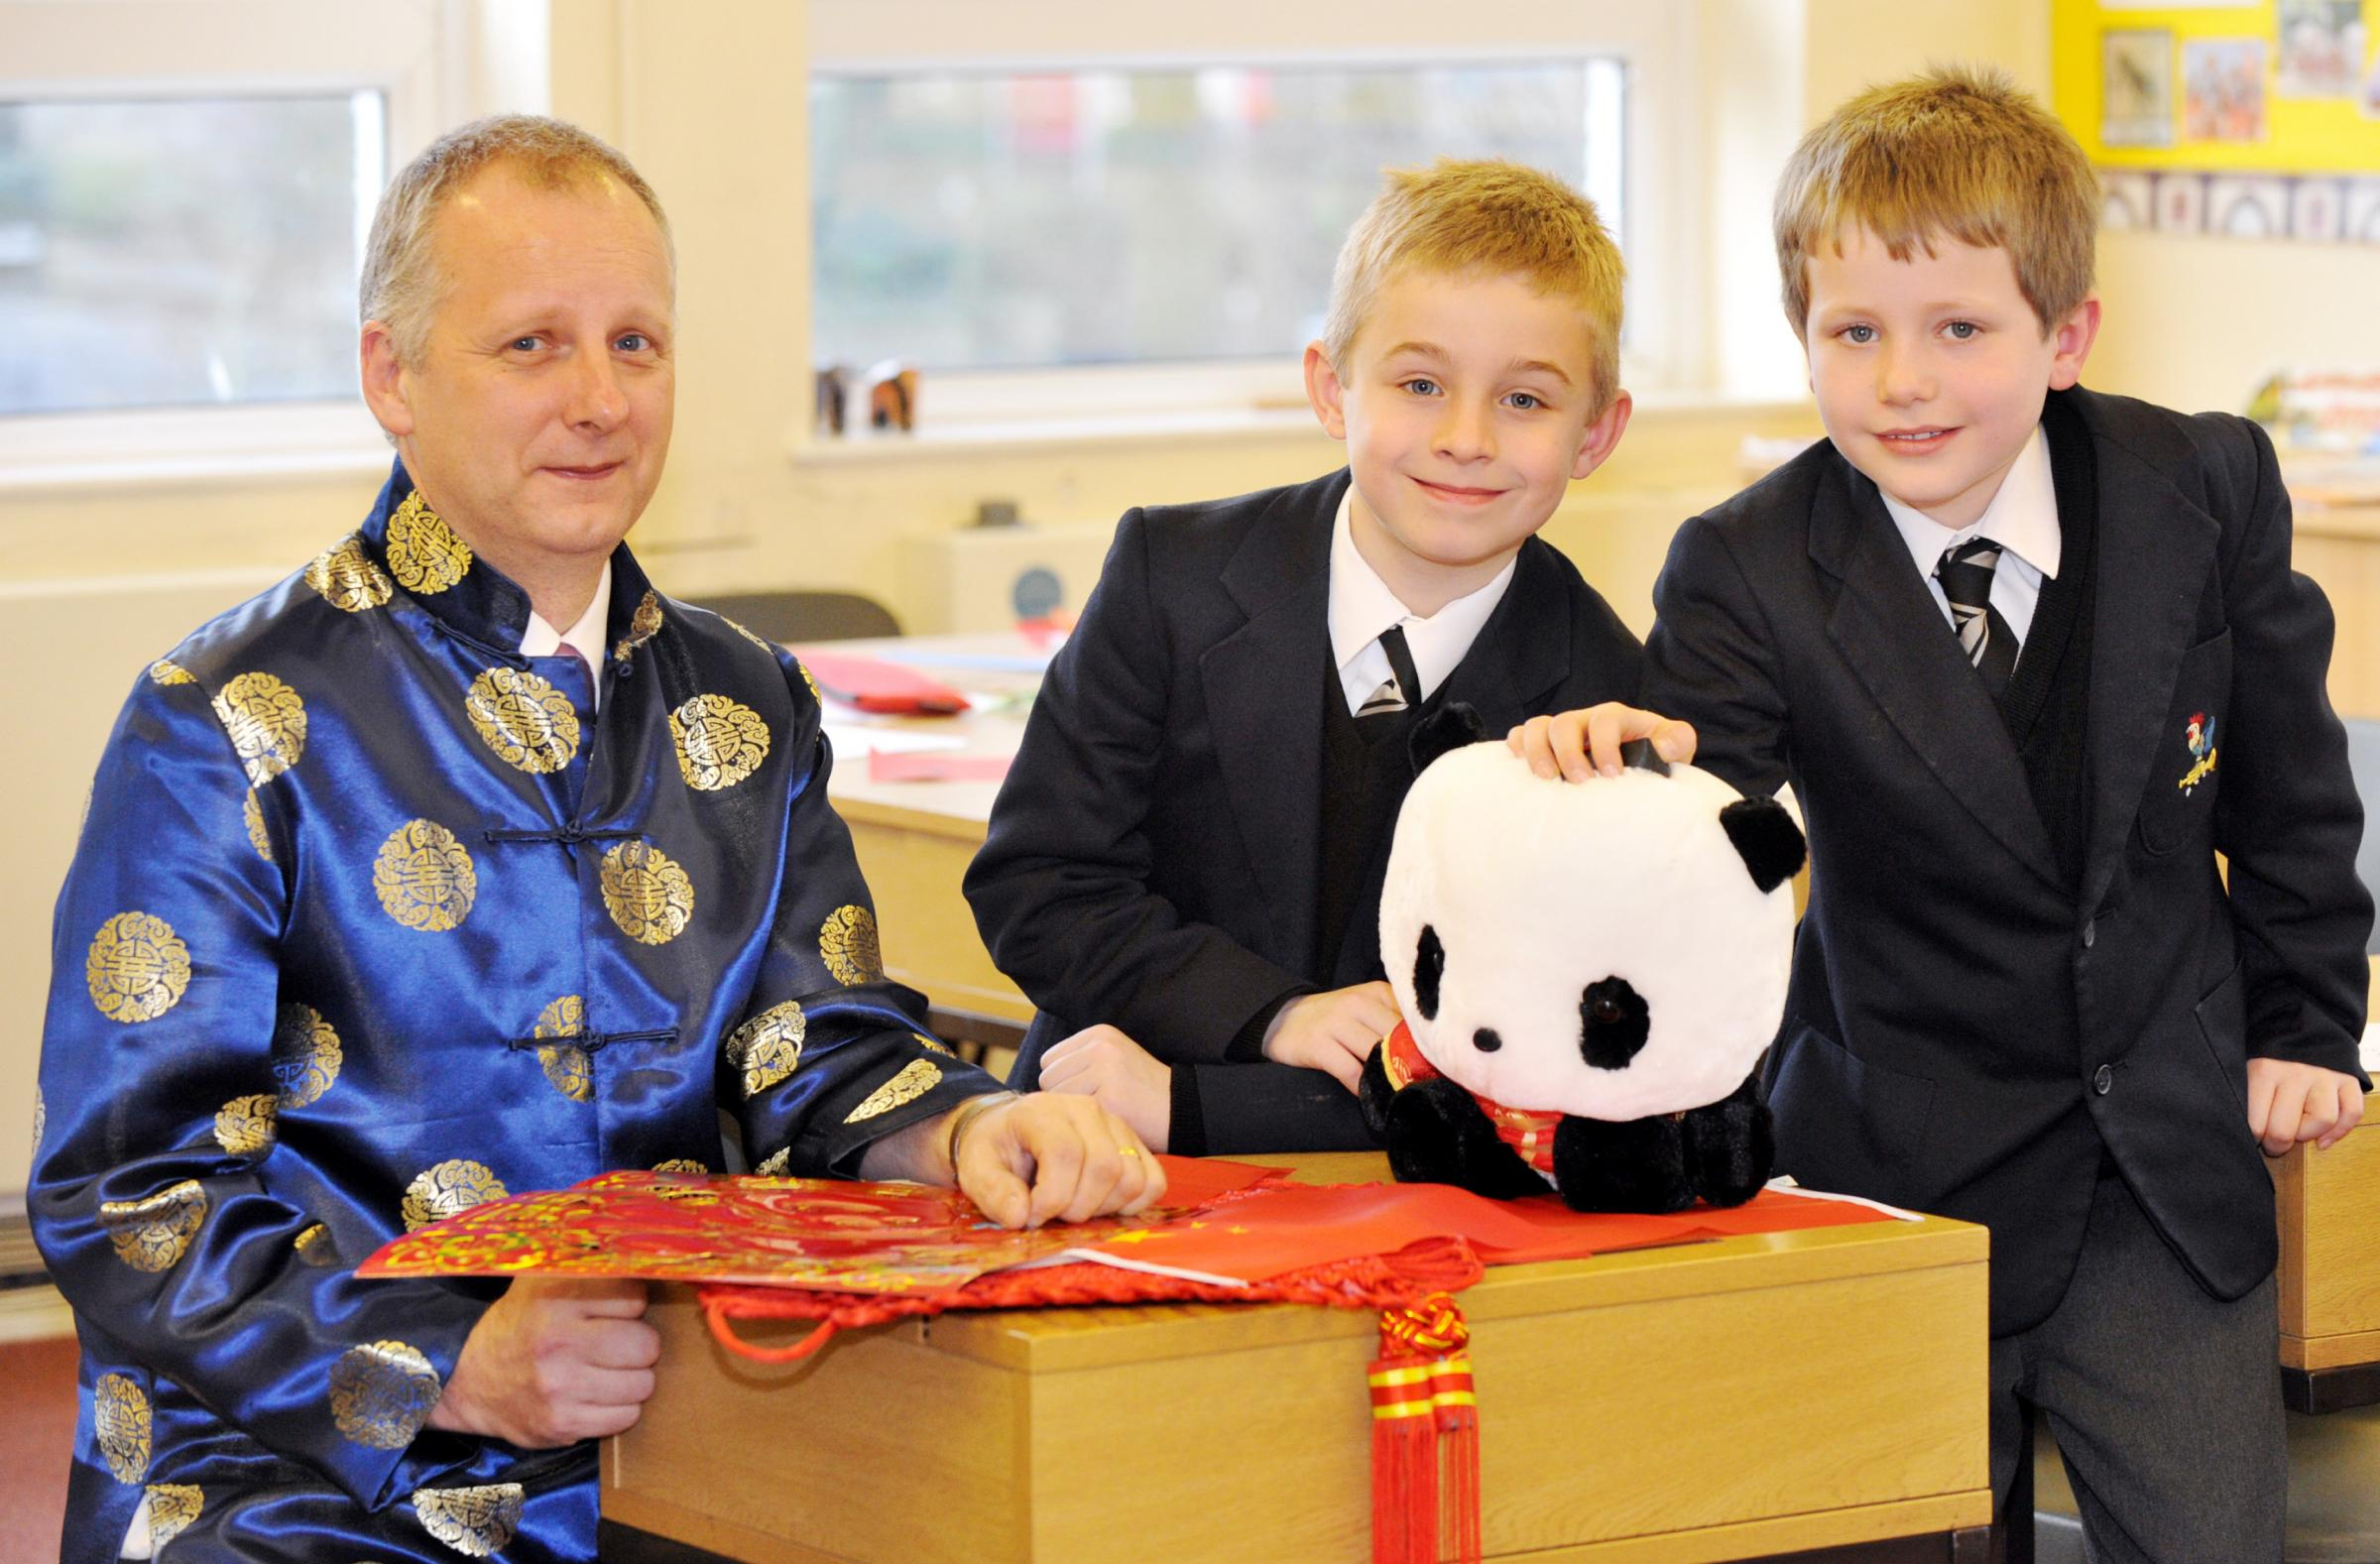 Mandarin teacher Colin Hough with pupils Saul Farrell and Charlie Ashton, both aged eight